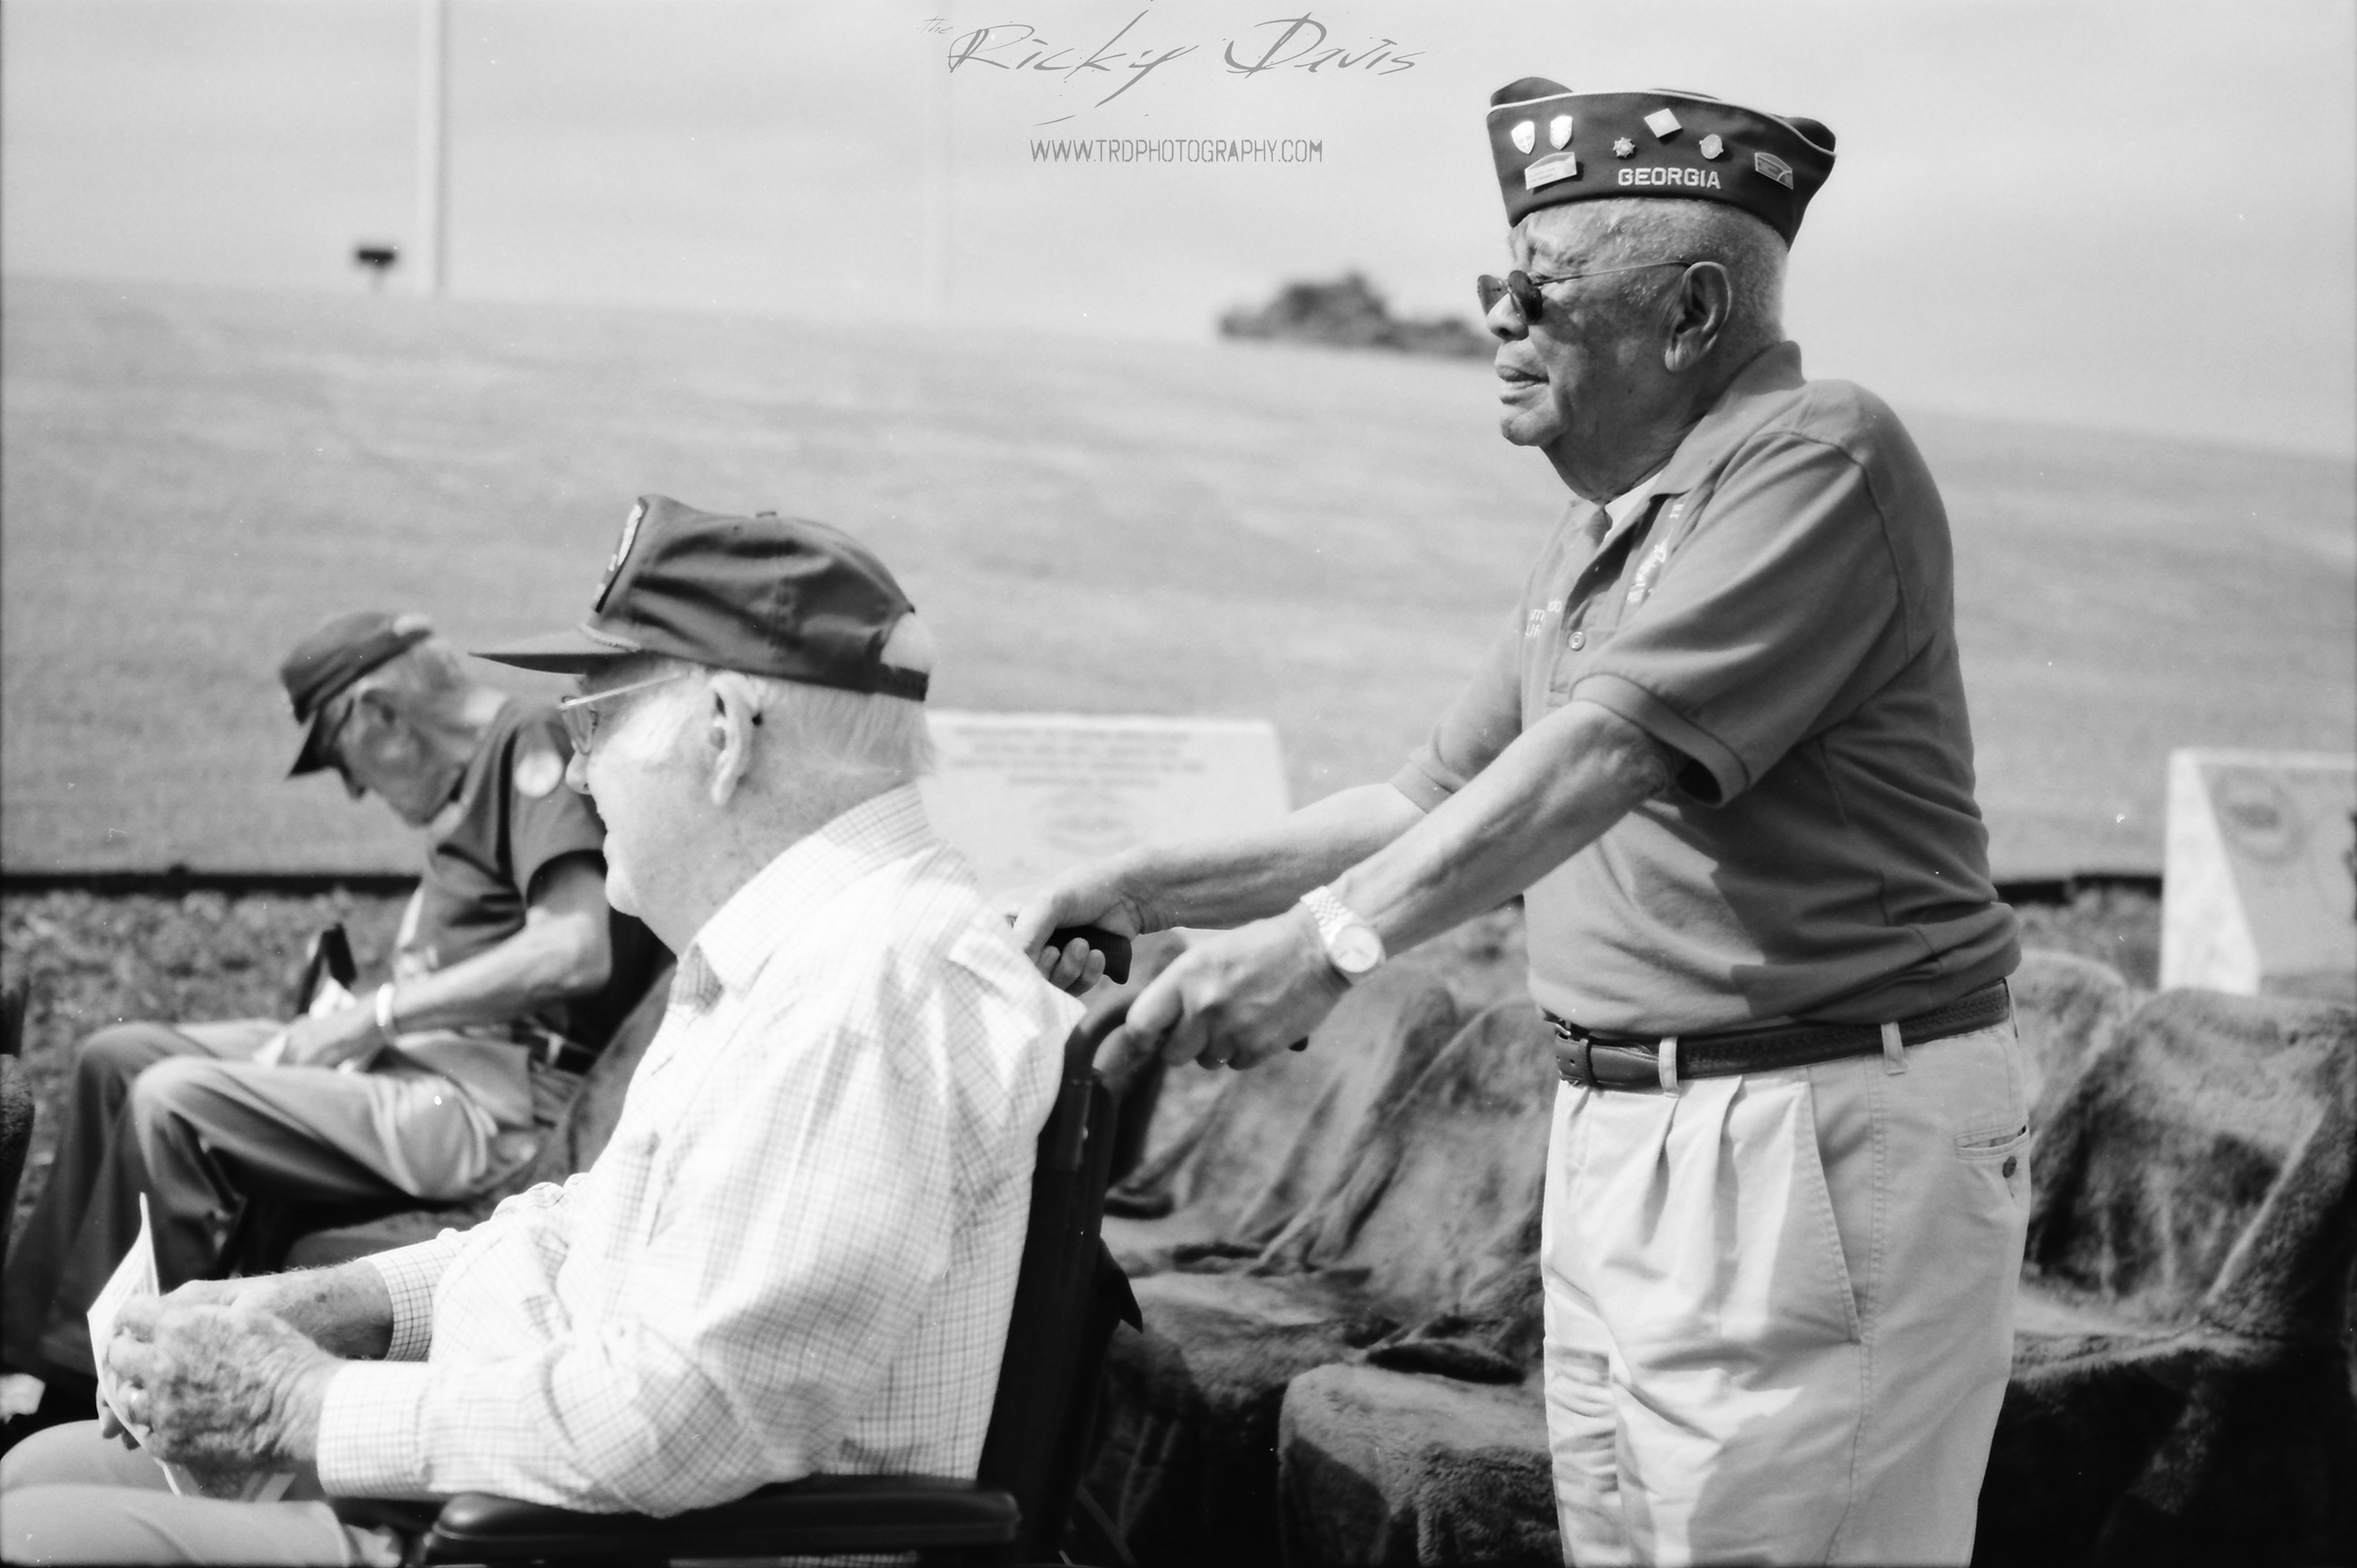 A WWII Veteran being brought to join fellow Vets before the ceremony. Photo by photographer Ricky Davis of TRD Photography - Film - Kodak Tmax100